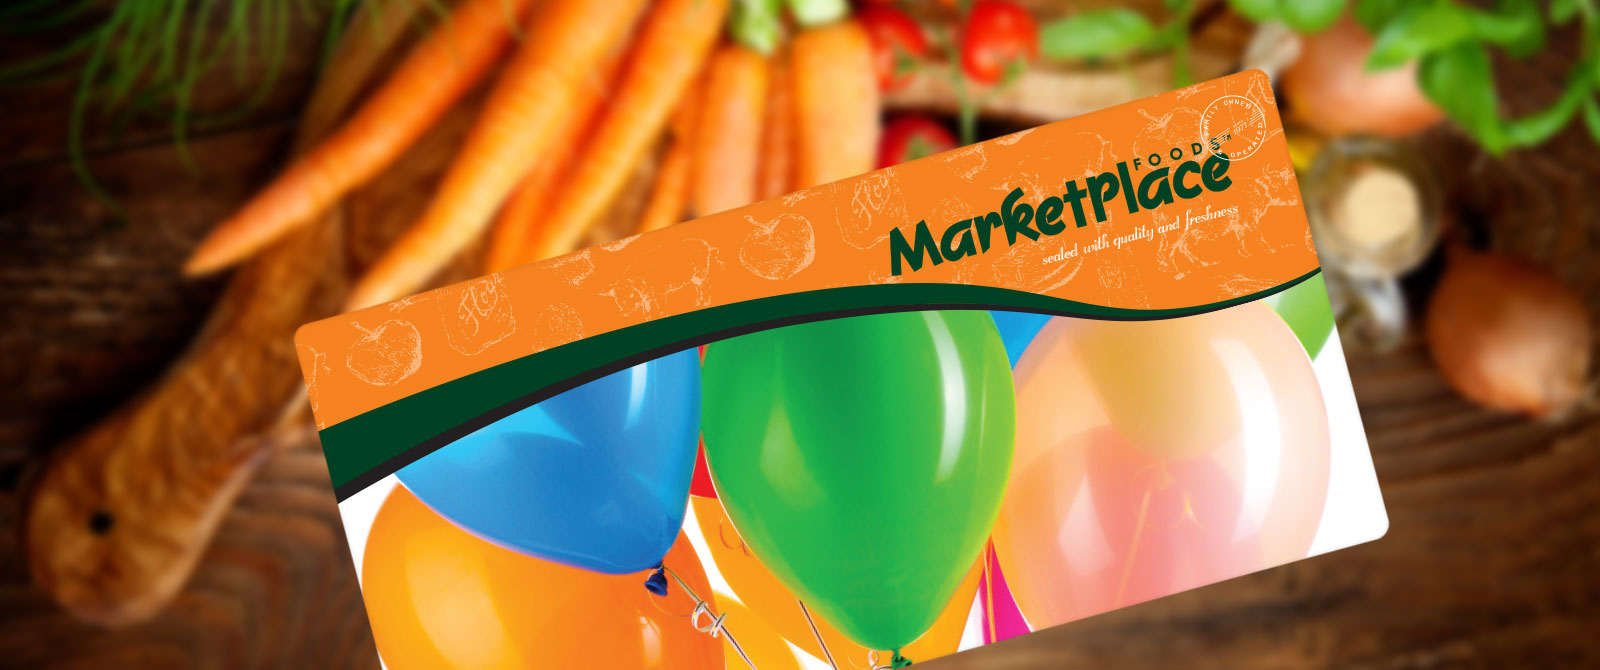 Marketplace Foods Gift Cards